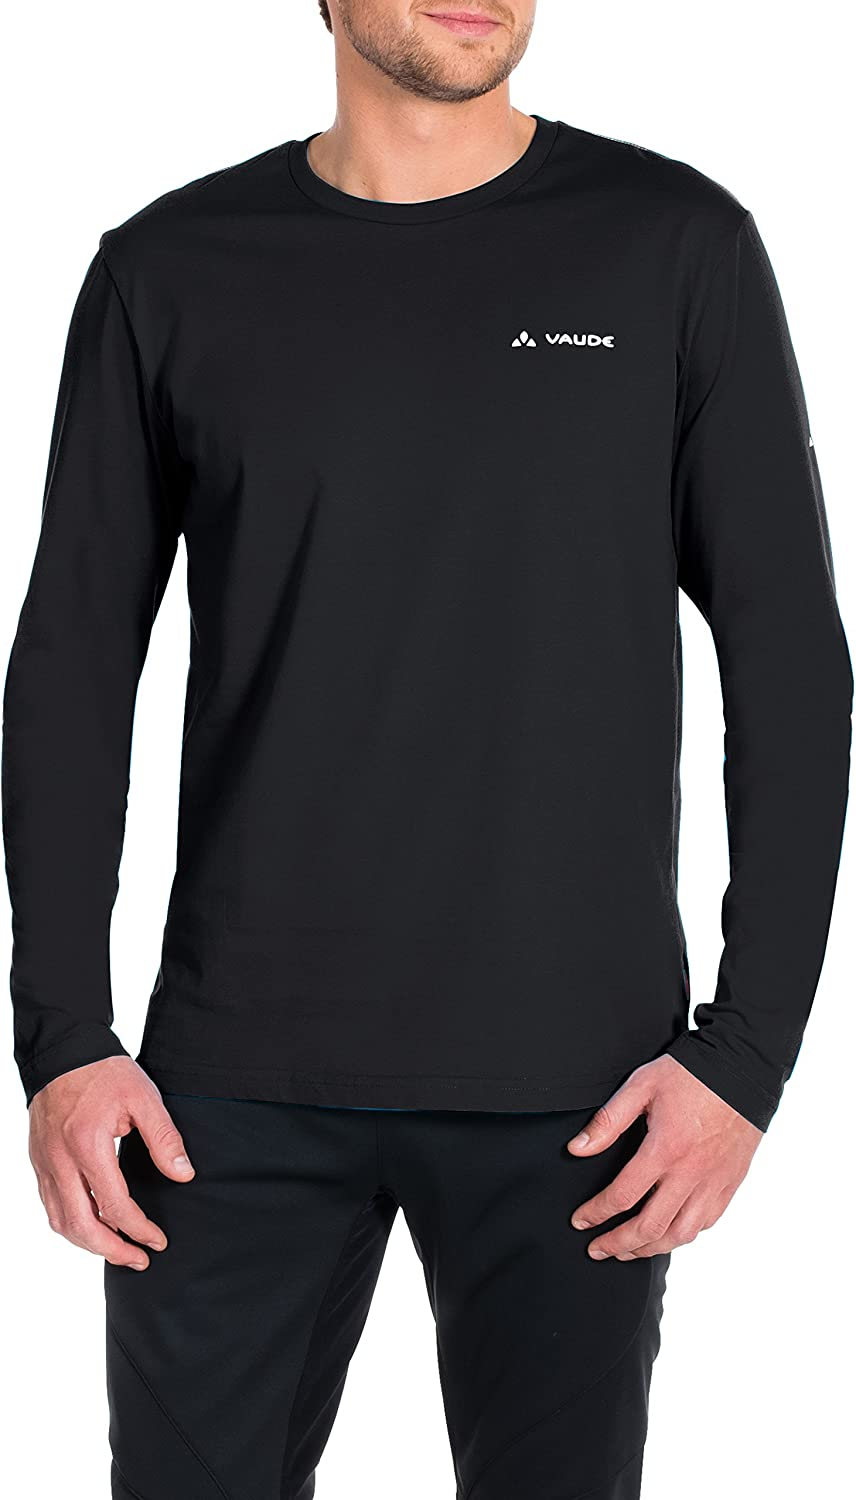 (X-Large, Black - black) - VAUDE Brand Men's Long-Sleeved Shirt